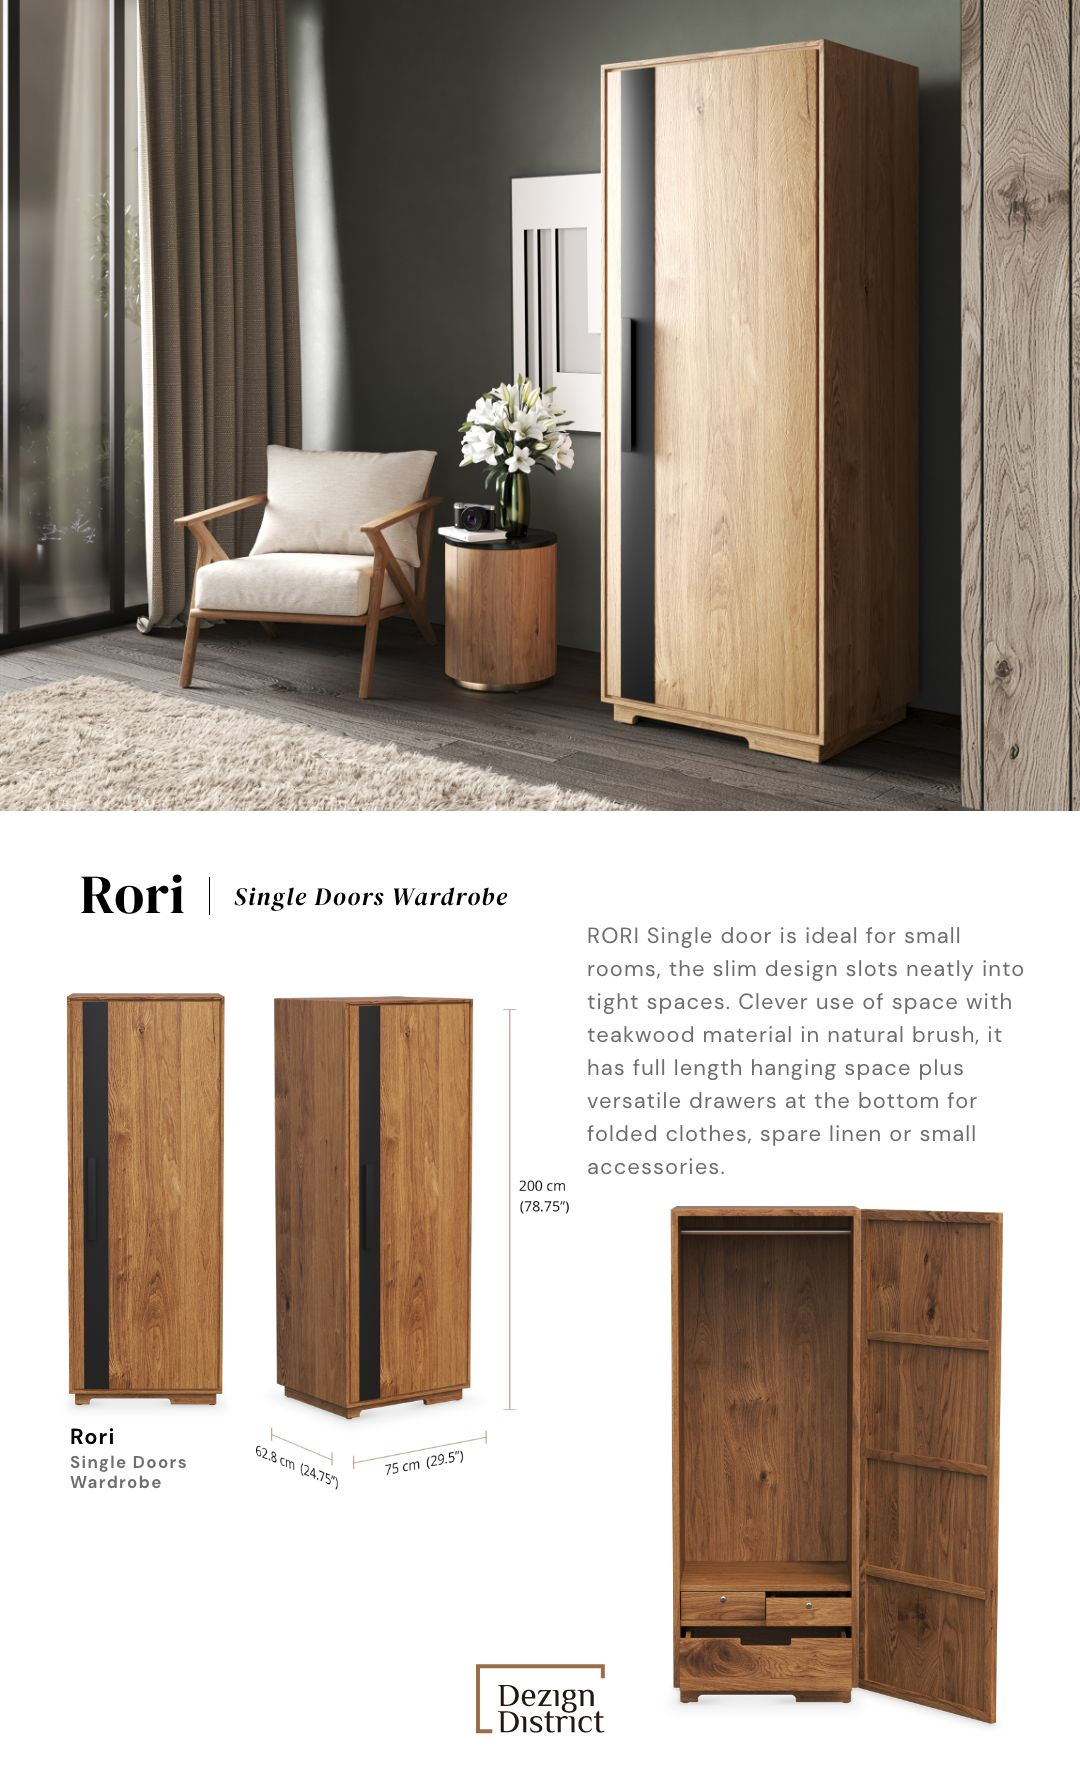 Rori Single Door Wardrobe In 2020 Single Door Wardrobe Single Doors Interior Styling